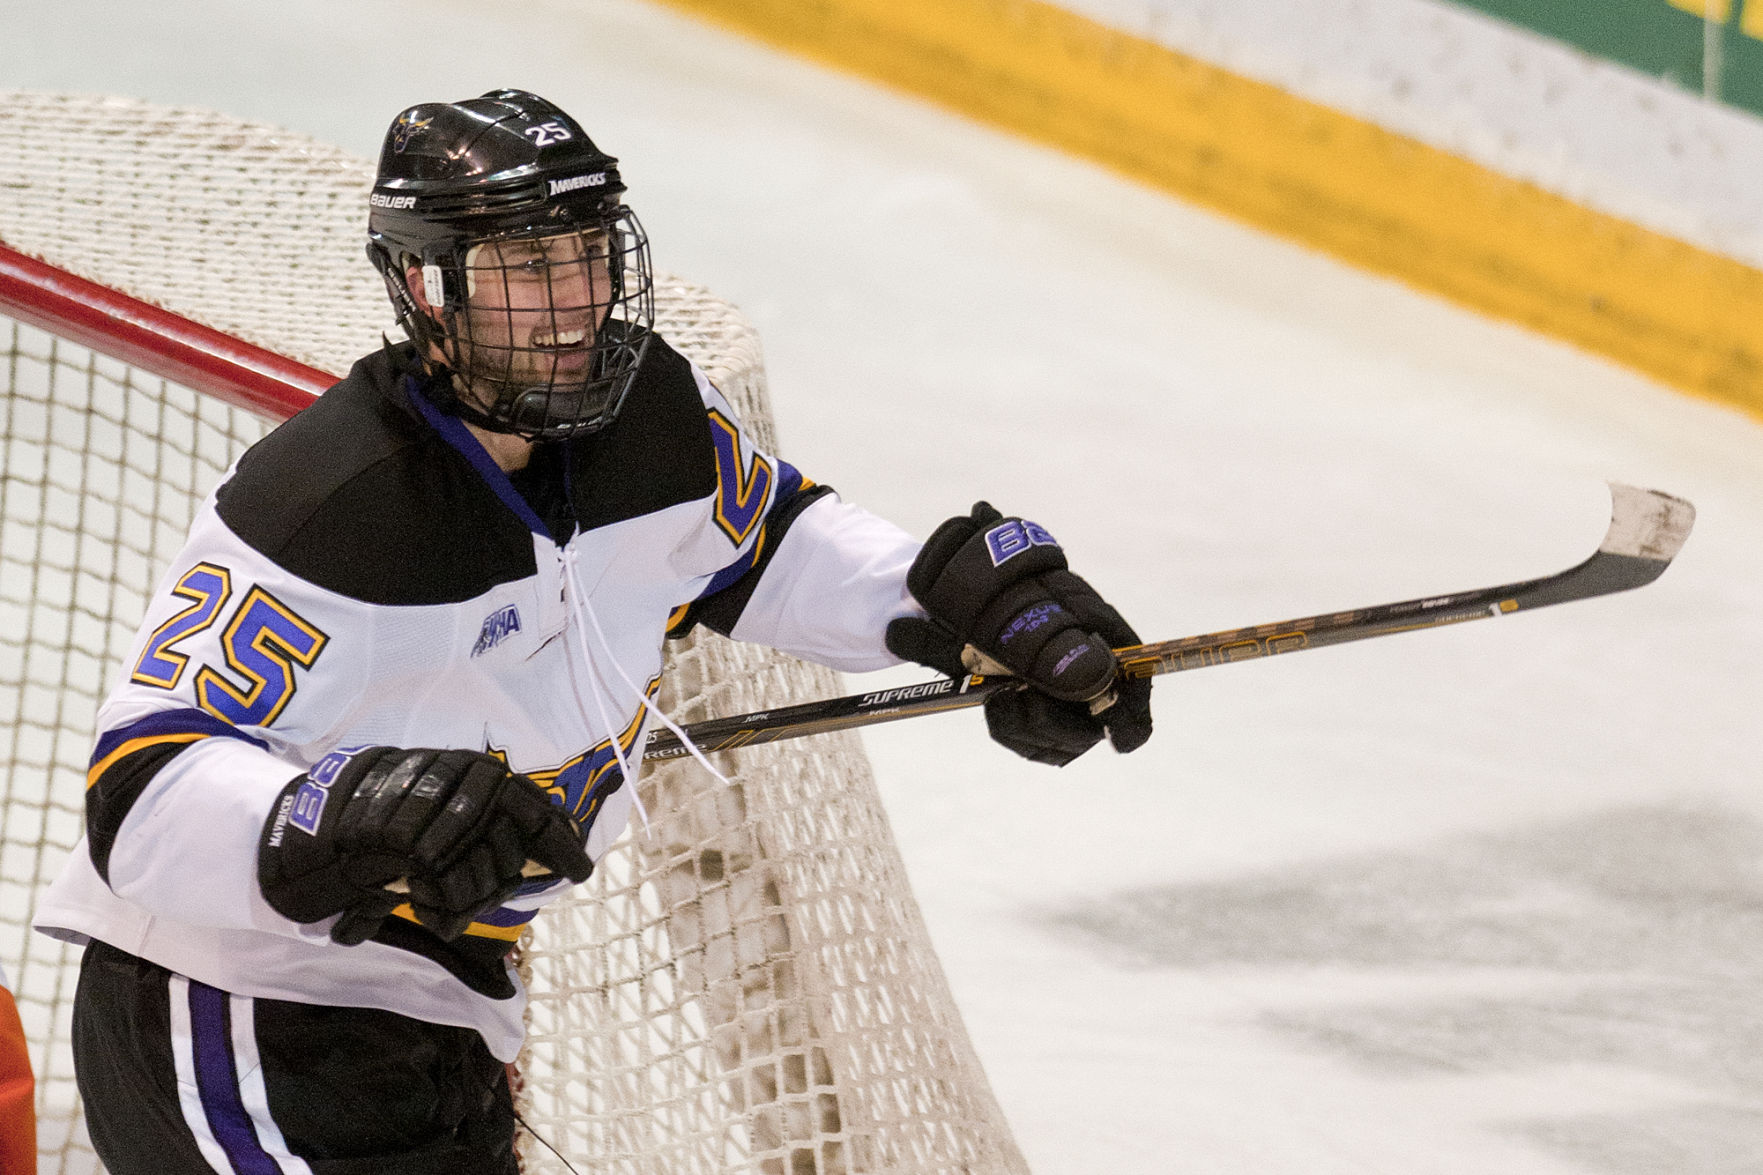 WCHA: MSU Hockey Review - Stepan Steps Up His Game For Minnesota State